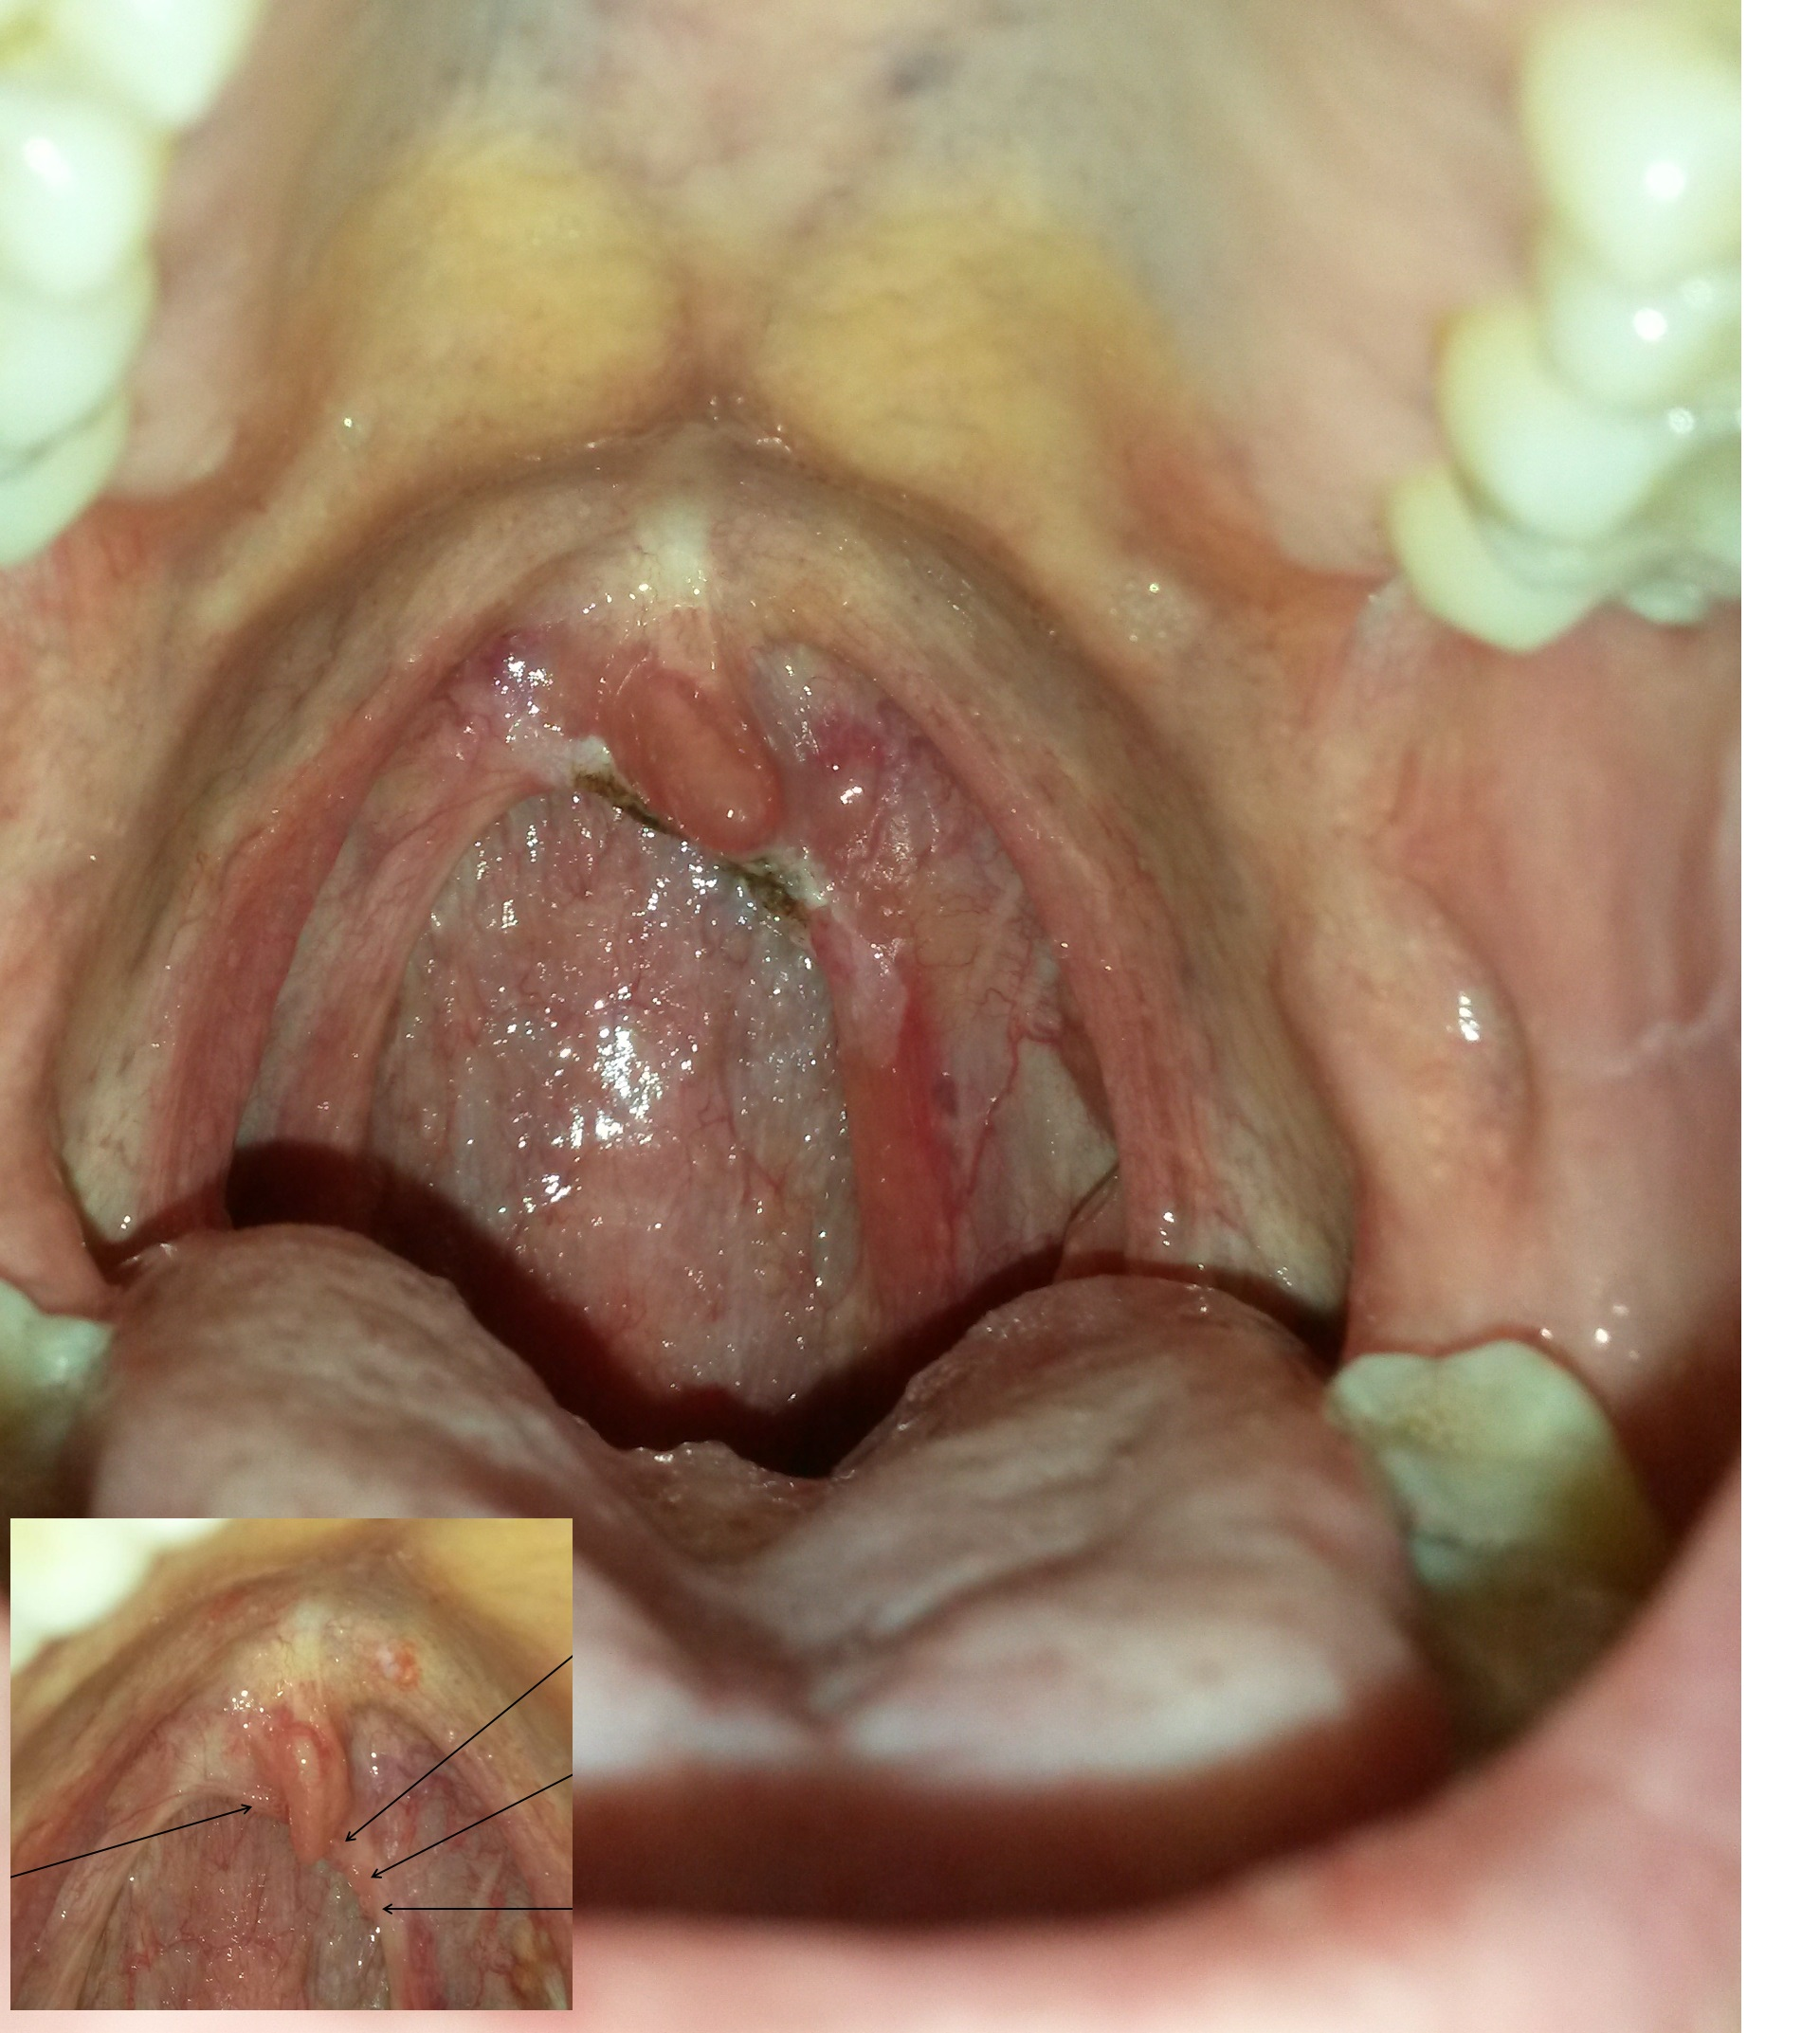 hpv warts throat treatment)